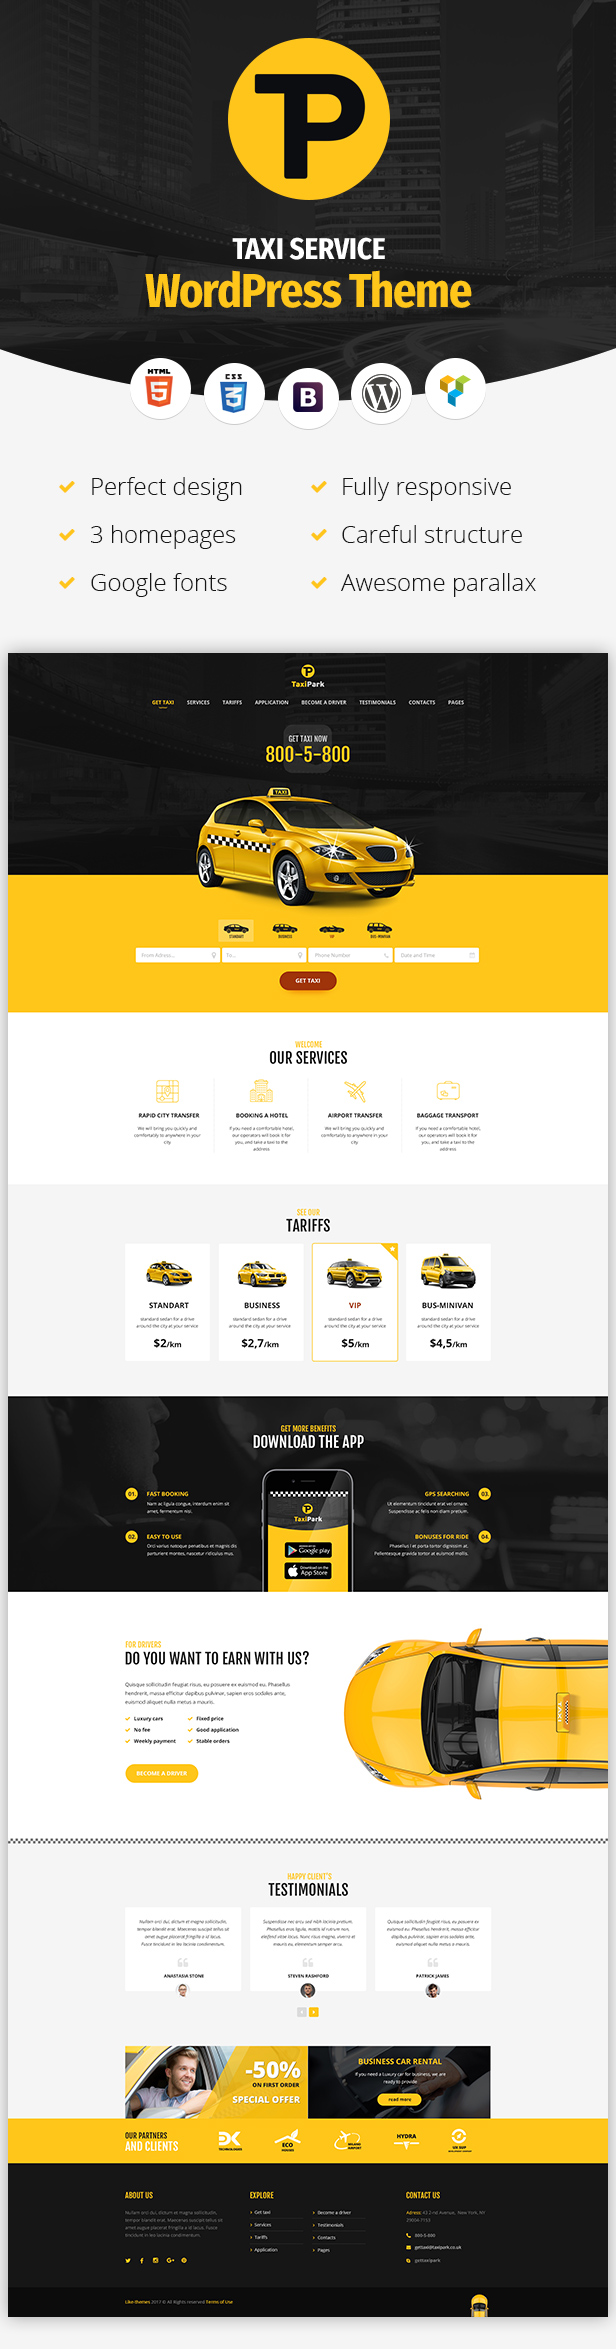 TaxiPark - Taxi Cab Service Company WordPress Theme - 3